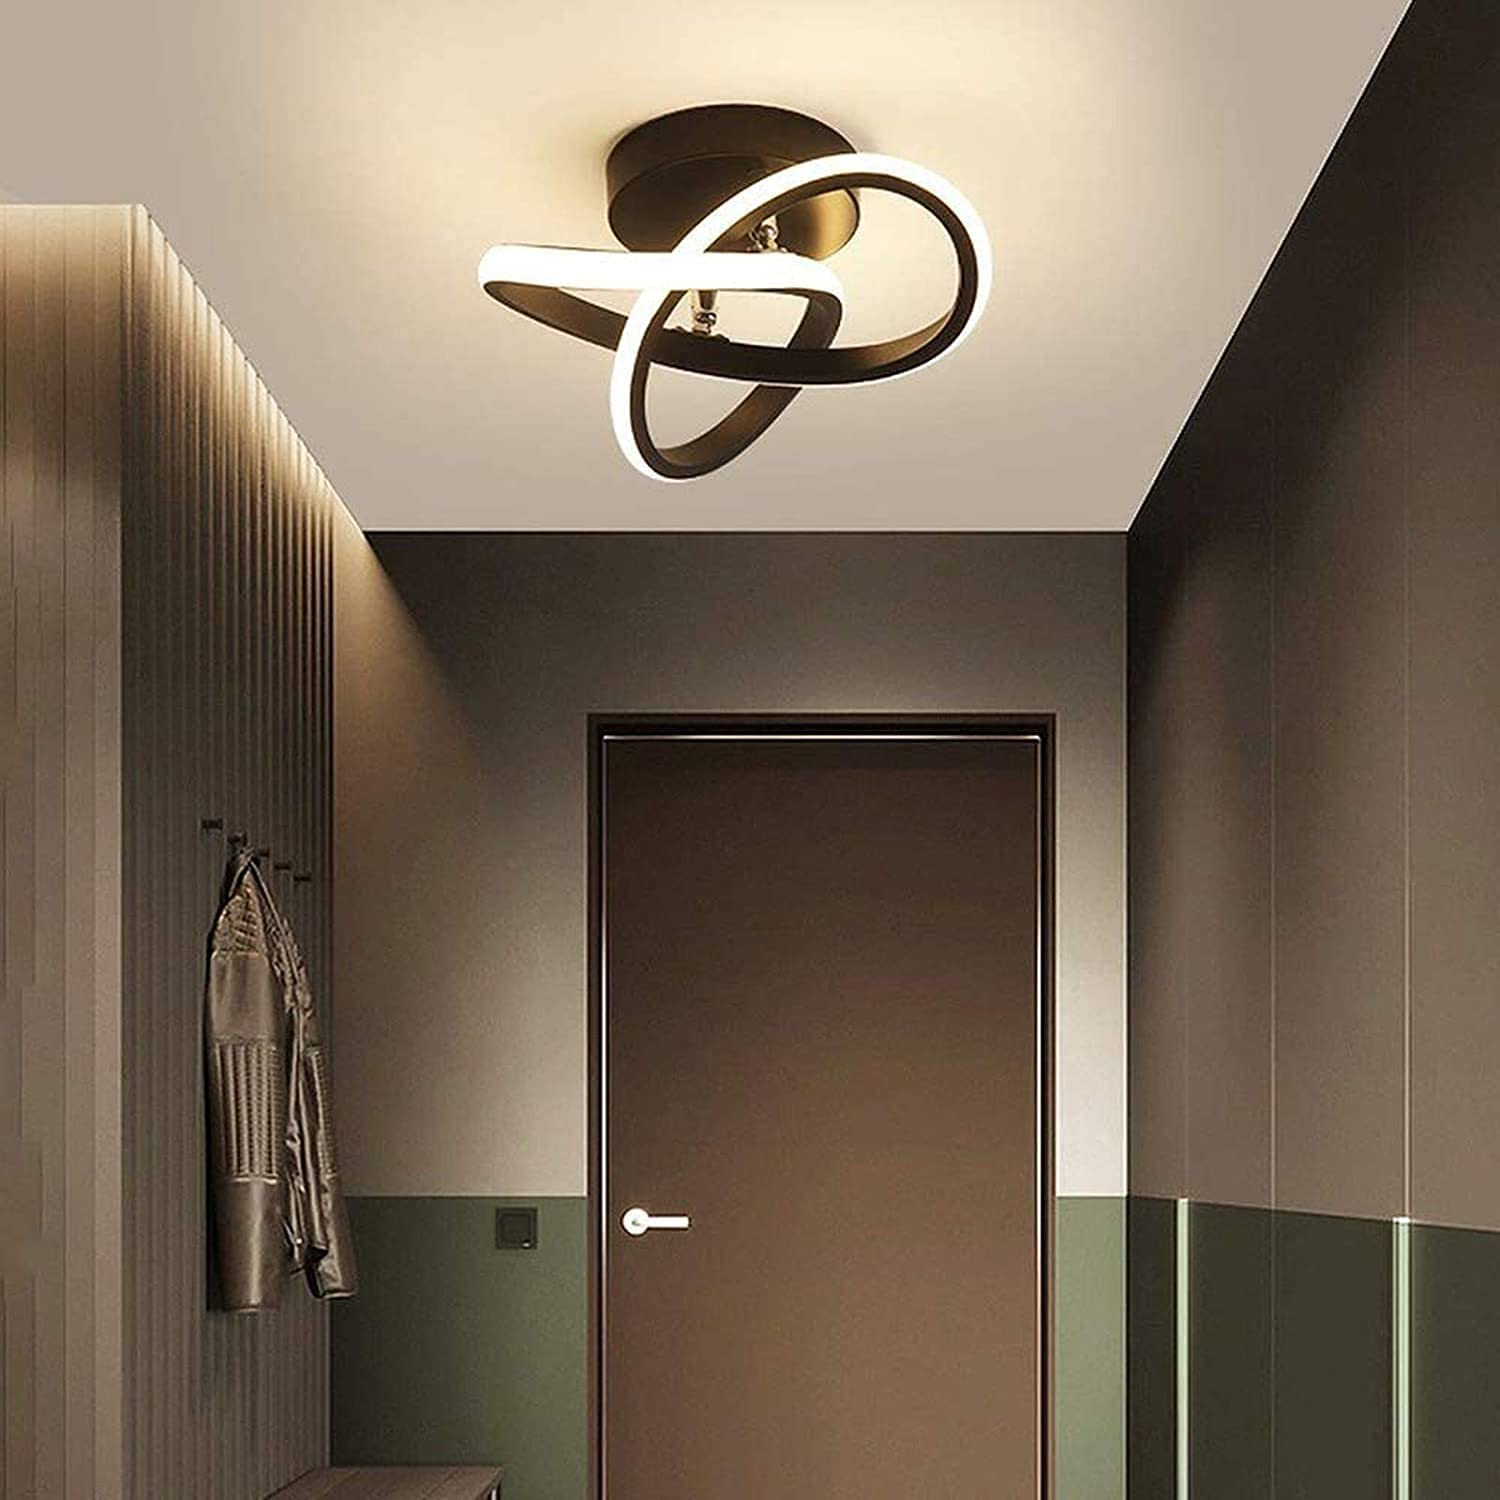 Max 55% OFF AFUMMID Max 55% OFF Modern Led Aisle Light Ceiling Ce White Lamp Metal Warm